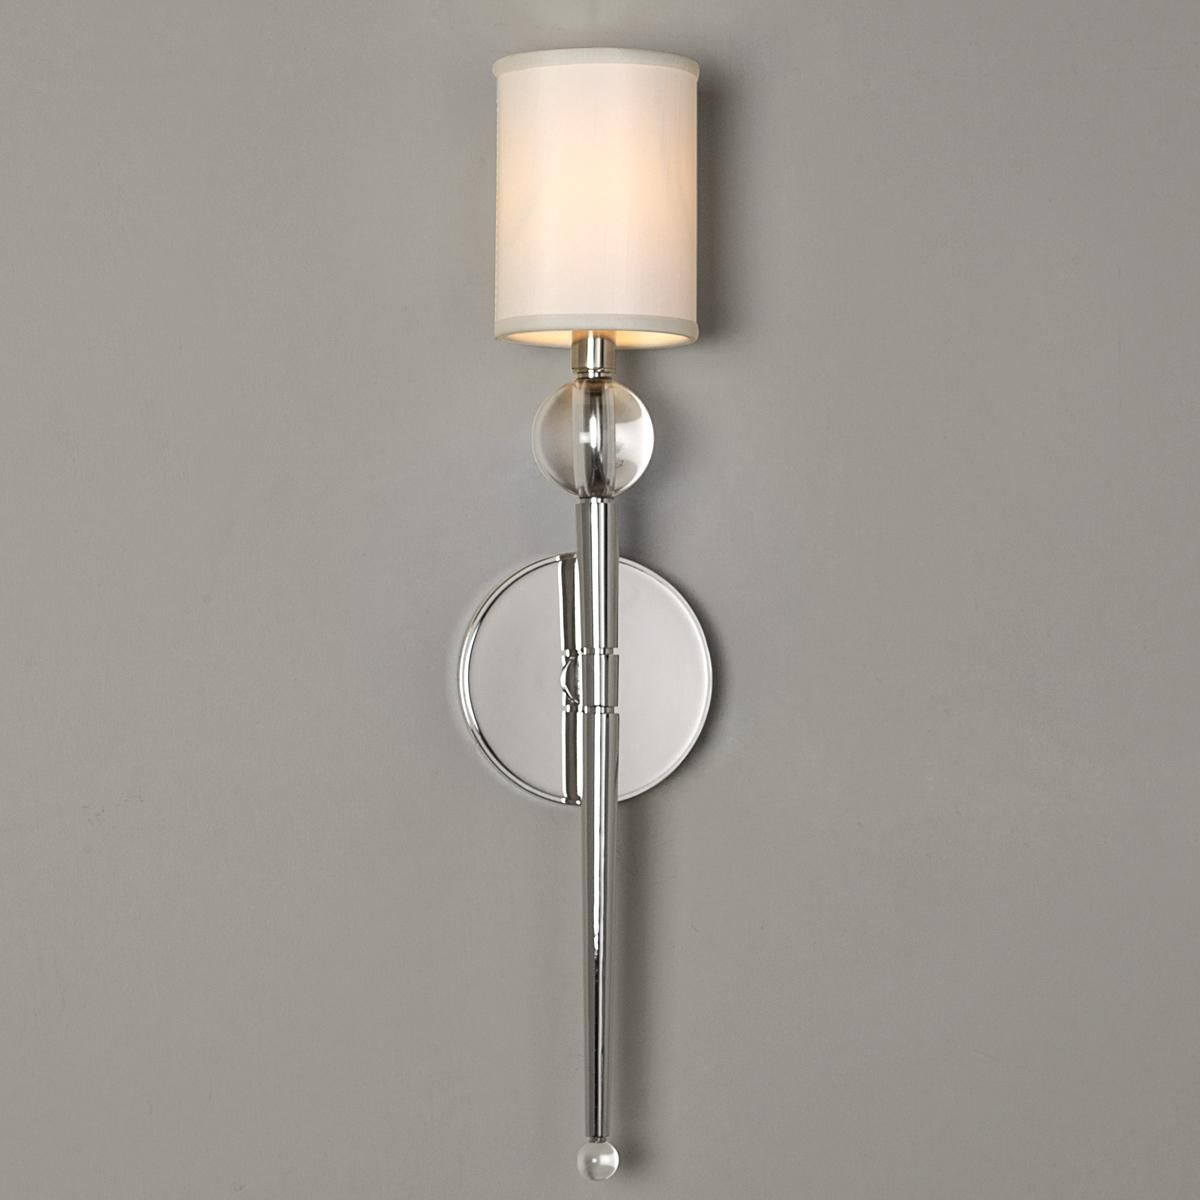 Wall Sconces Beside Tv : Crystal Ball and Elongated Torch Wall Sconce Crystal ball, Torches and Wall sconces